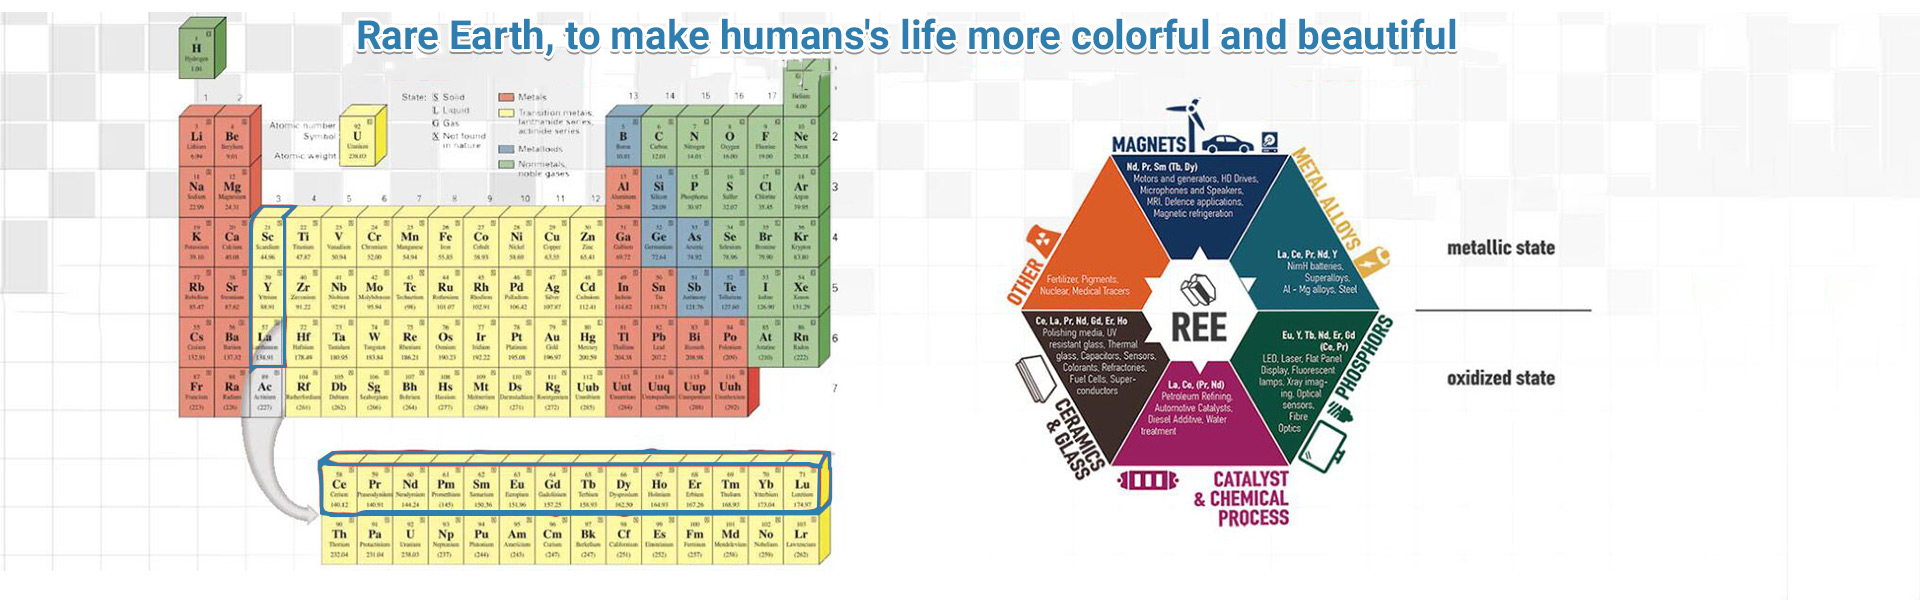 Rare Earth   to make humans life more colorful and beautiful